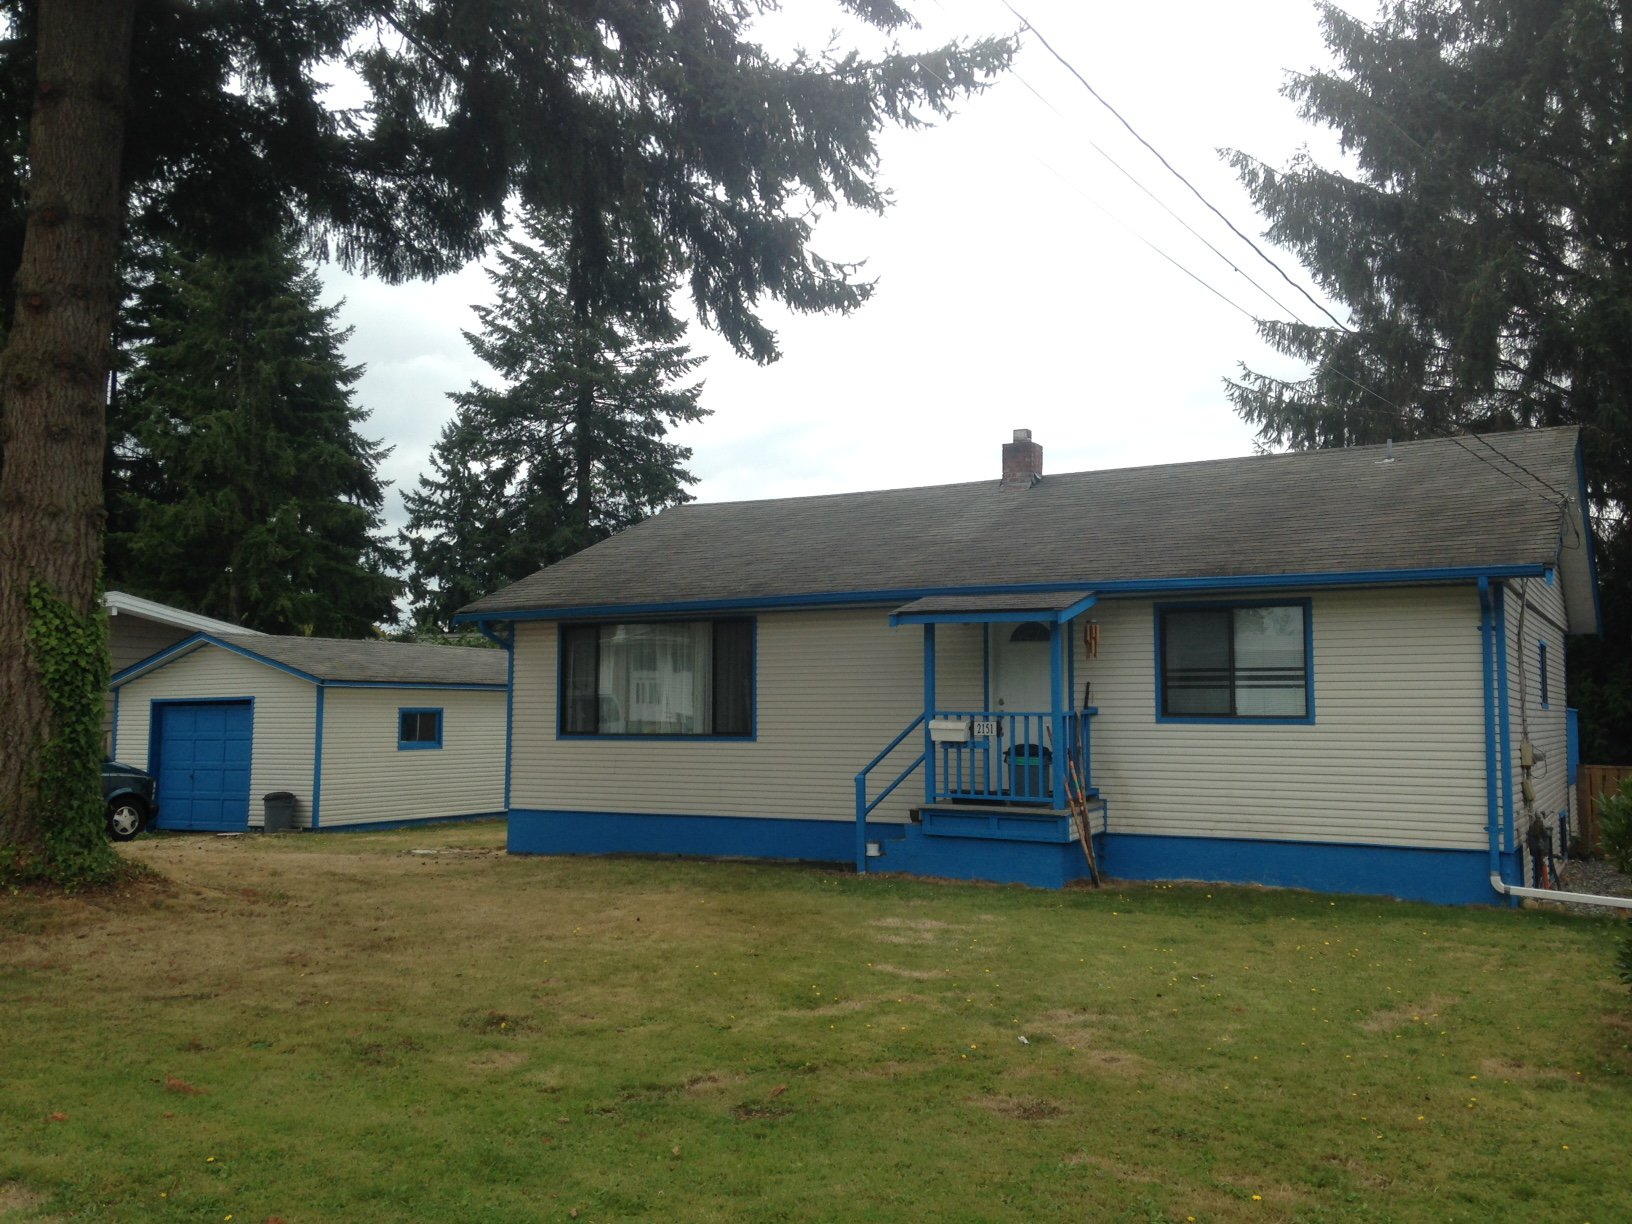 Main Photo: 2151 Wildwood St. in Abbotsford: Central Abbotsford House for rent